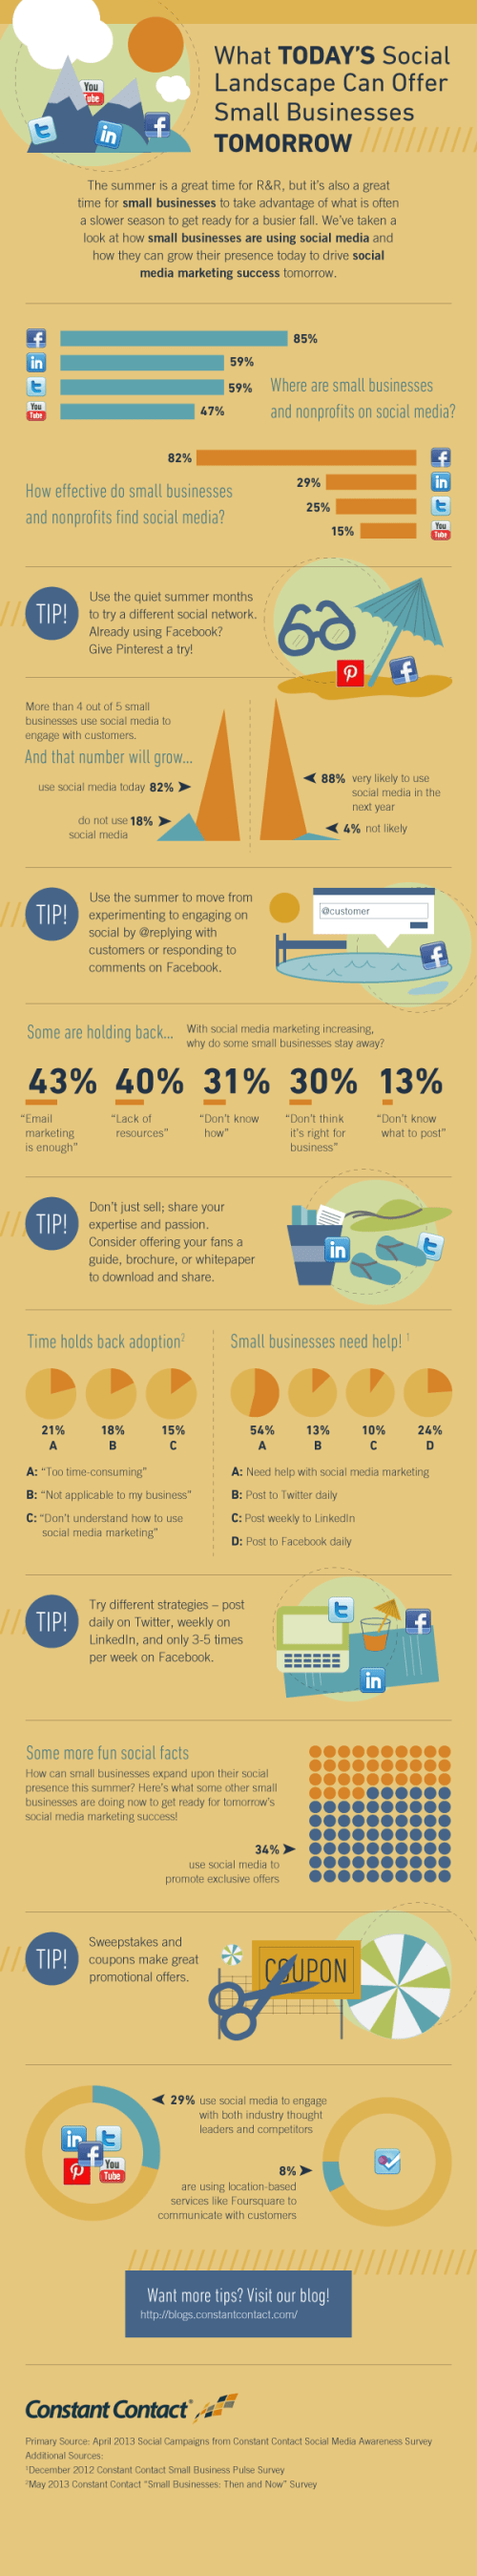 what-todays-social-landscape-can-offer-small-businesses-tomorrow_51d45ca36a20f